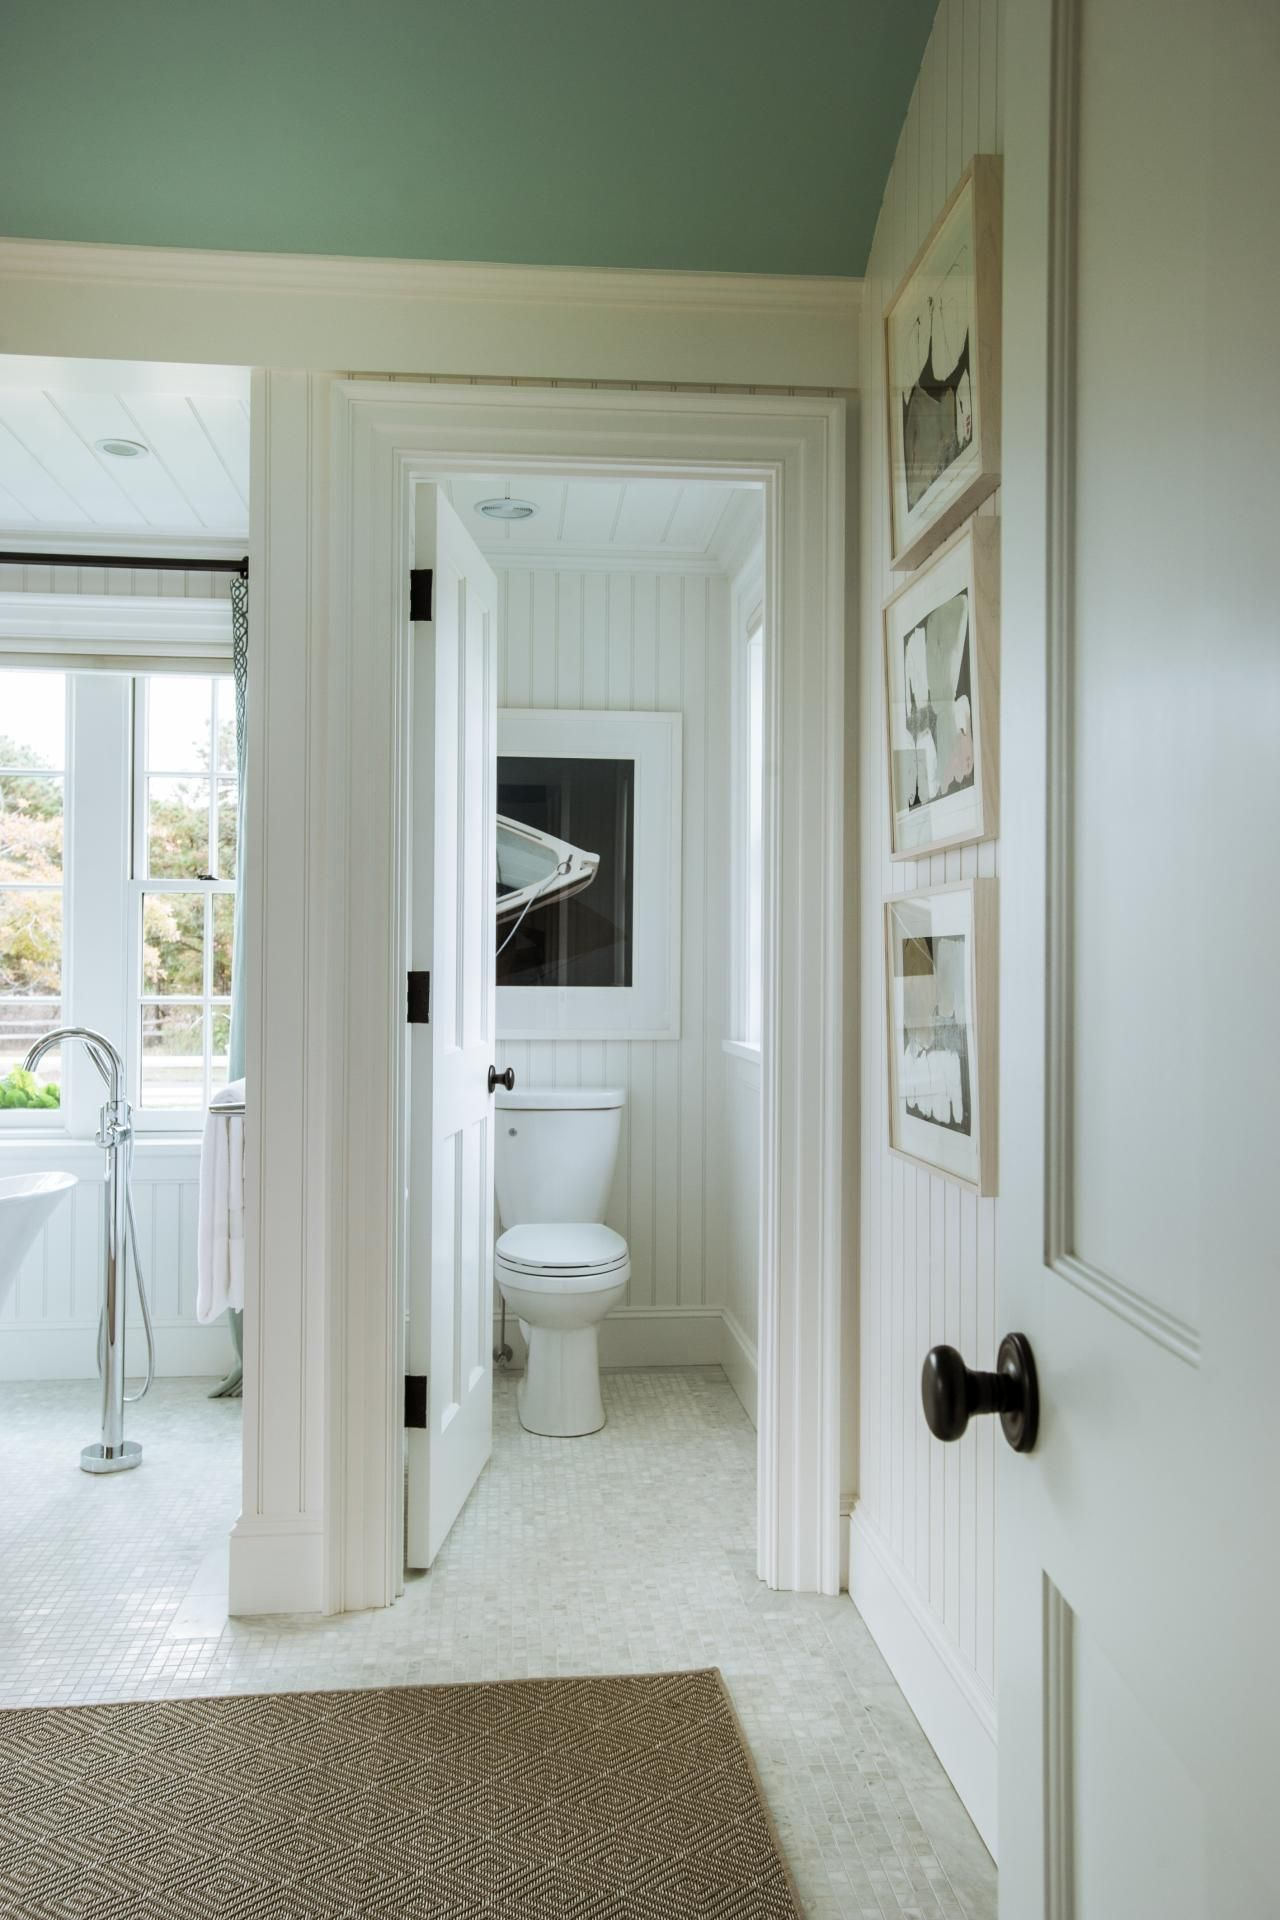 A stalled water closet separates the toilet from the rest of the